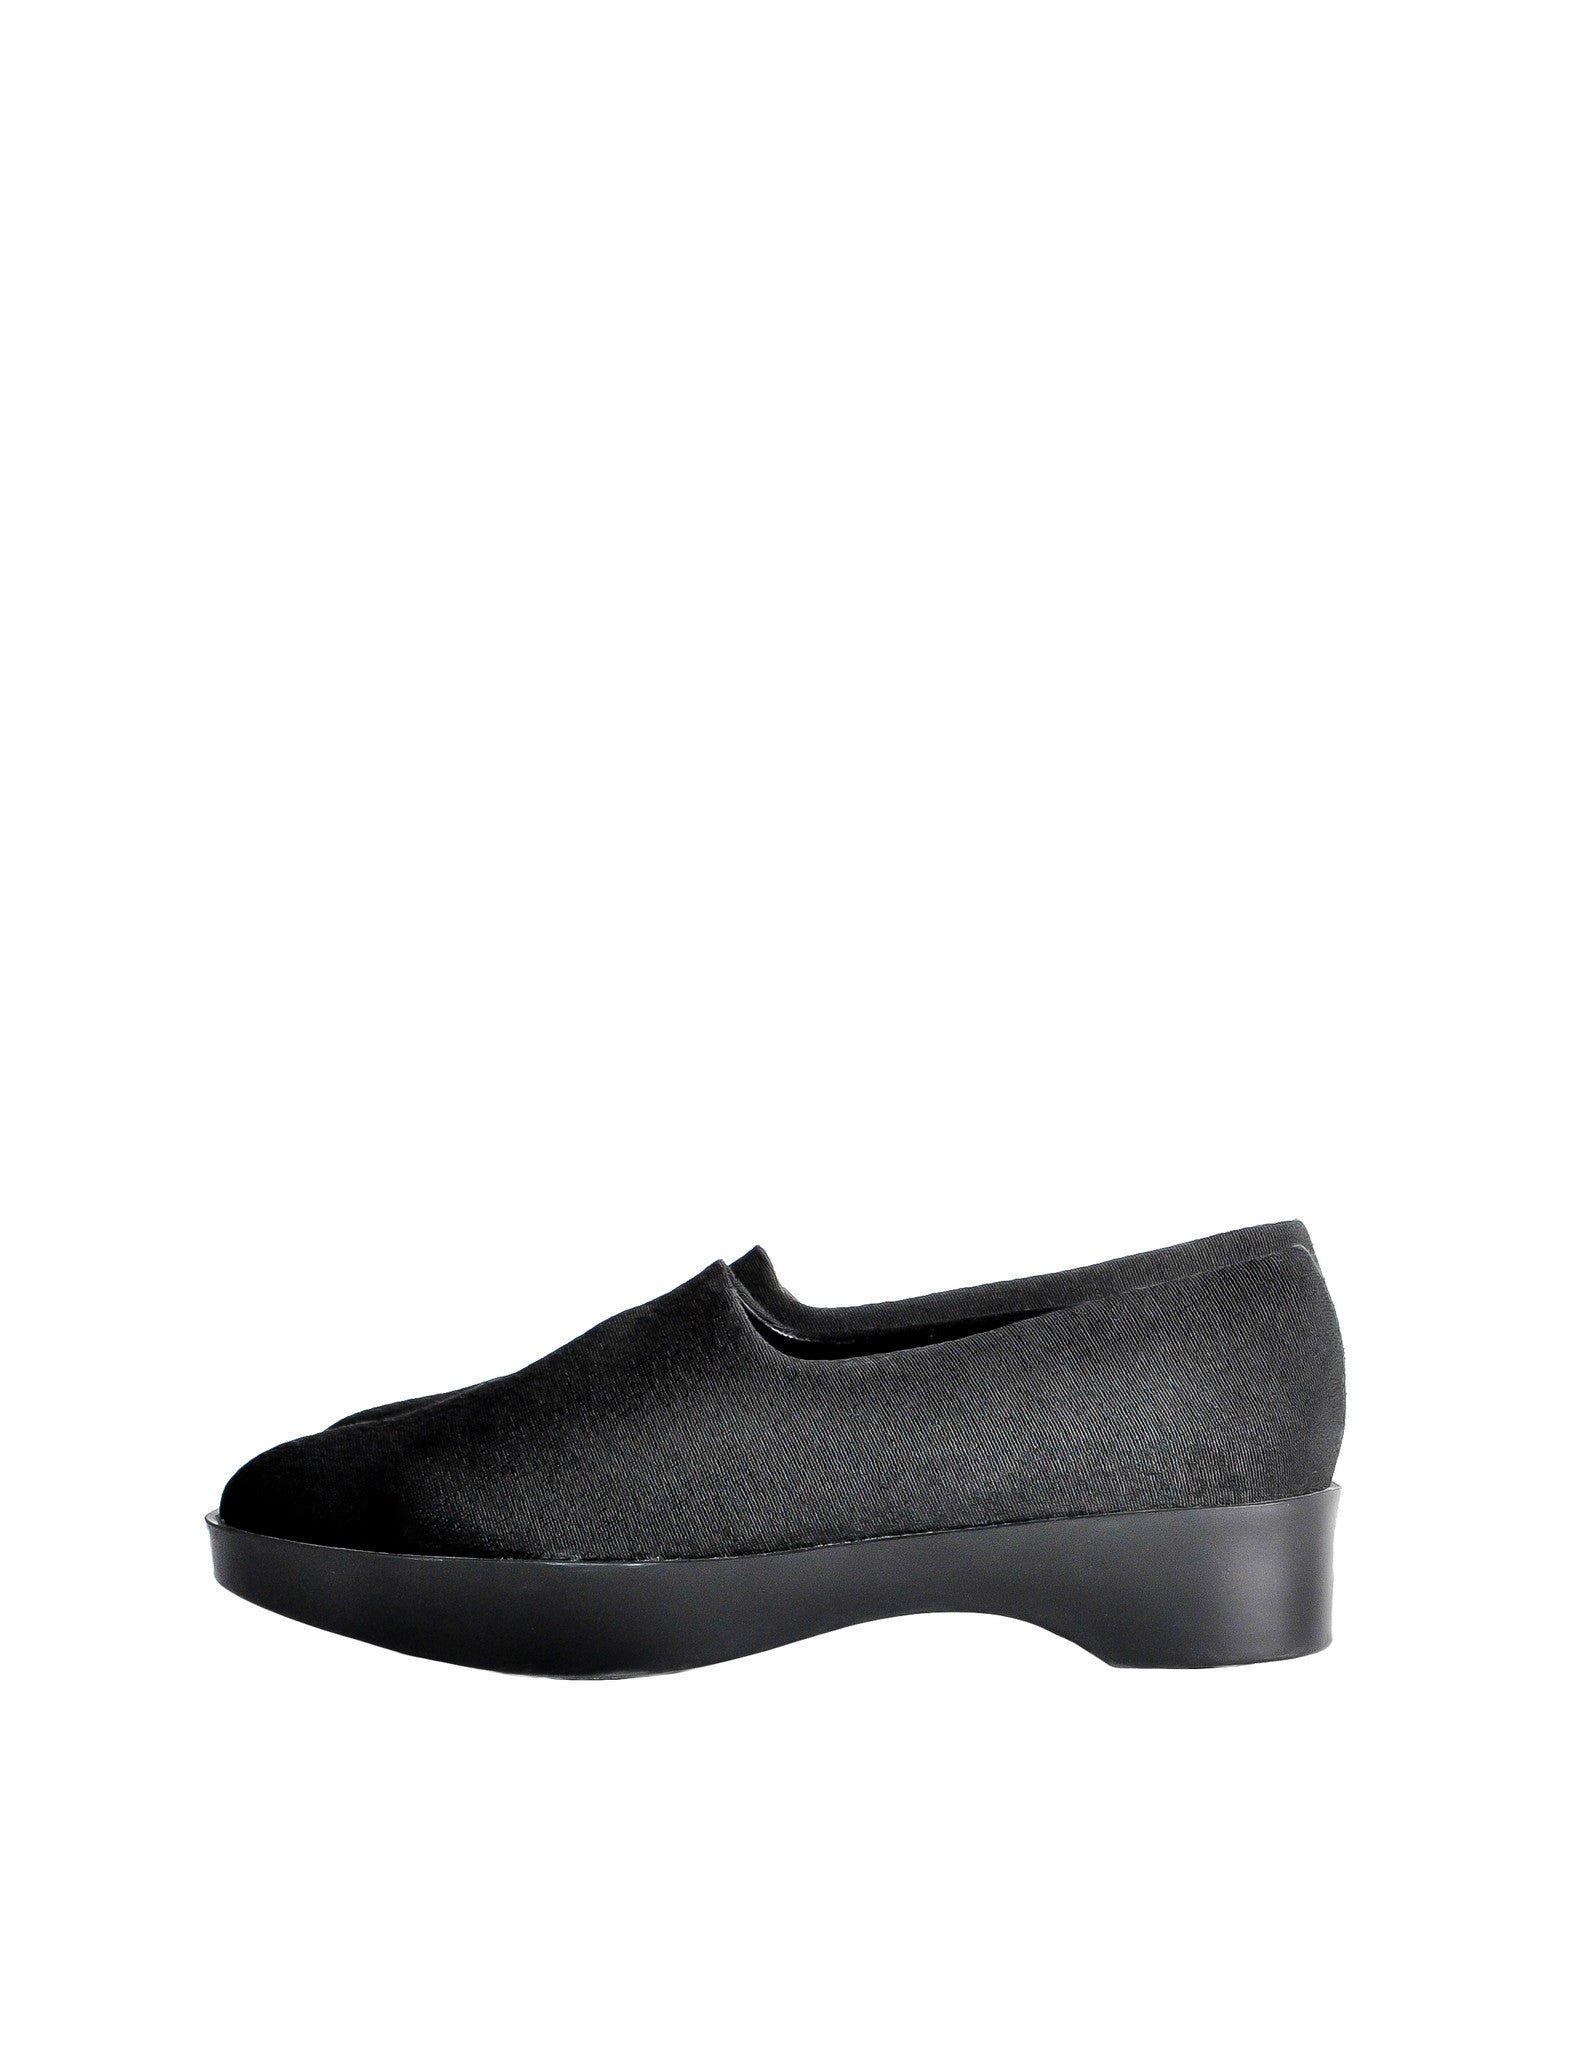 Robert Clergerie Vintage Black Stretch Platform Slip On Shoes - Amarcord Vintage Fashion  - 1